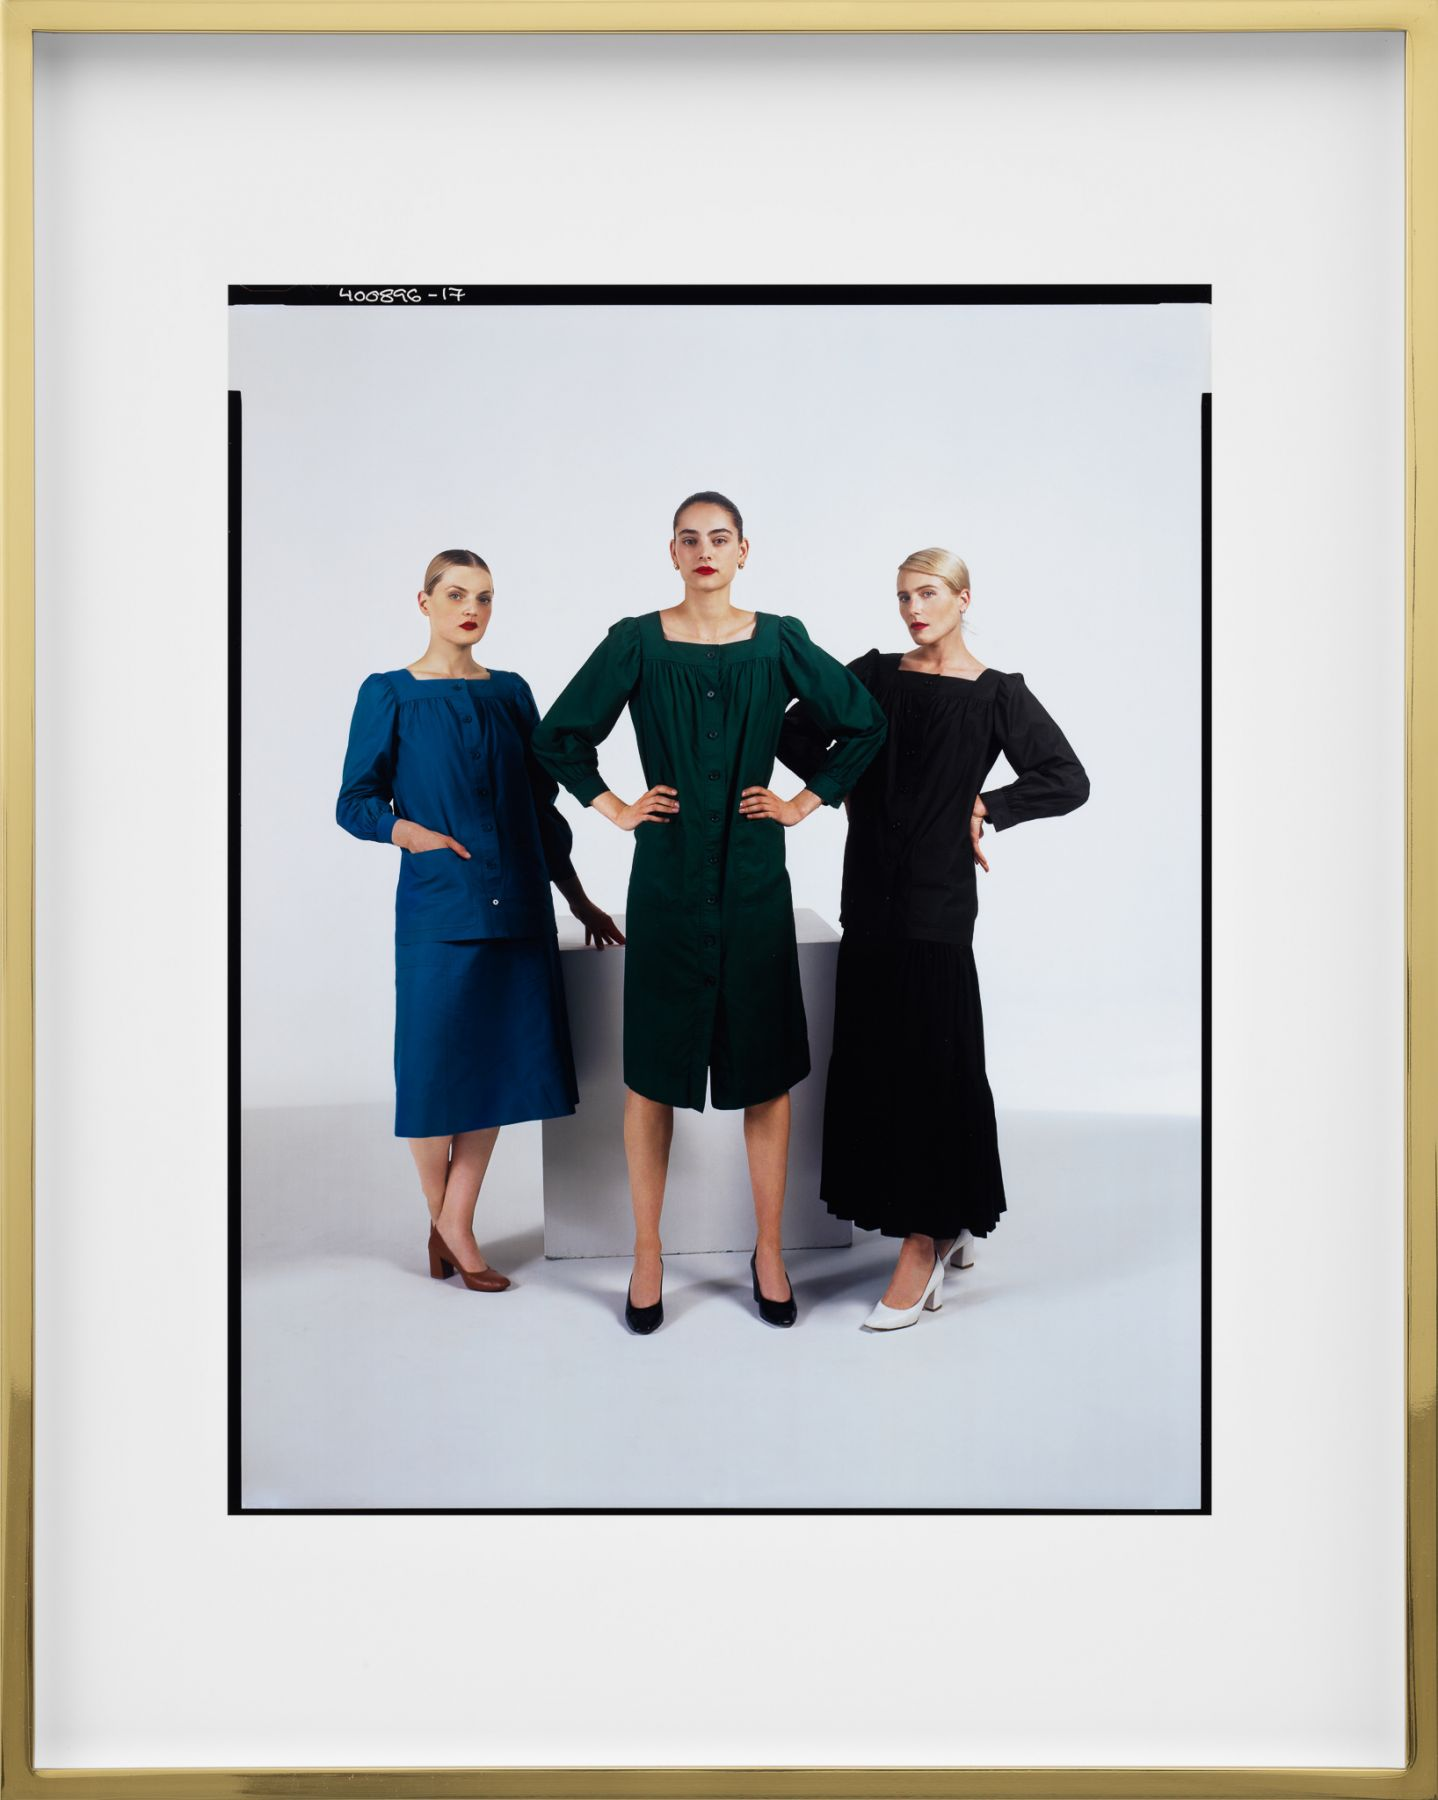 Elad Lassry, Untitled (Assignment 96-17), 2018